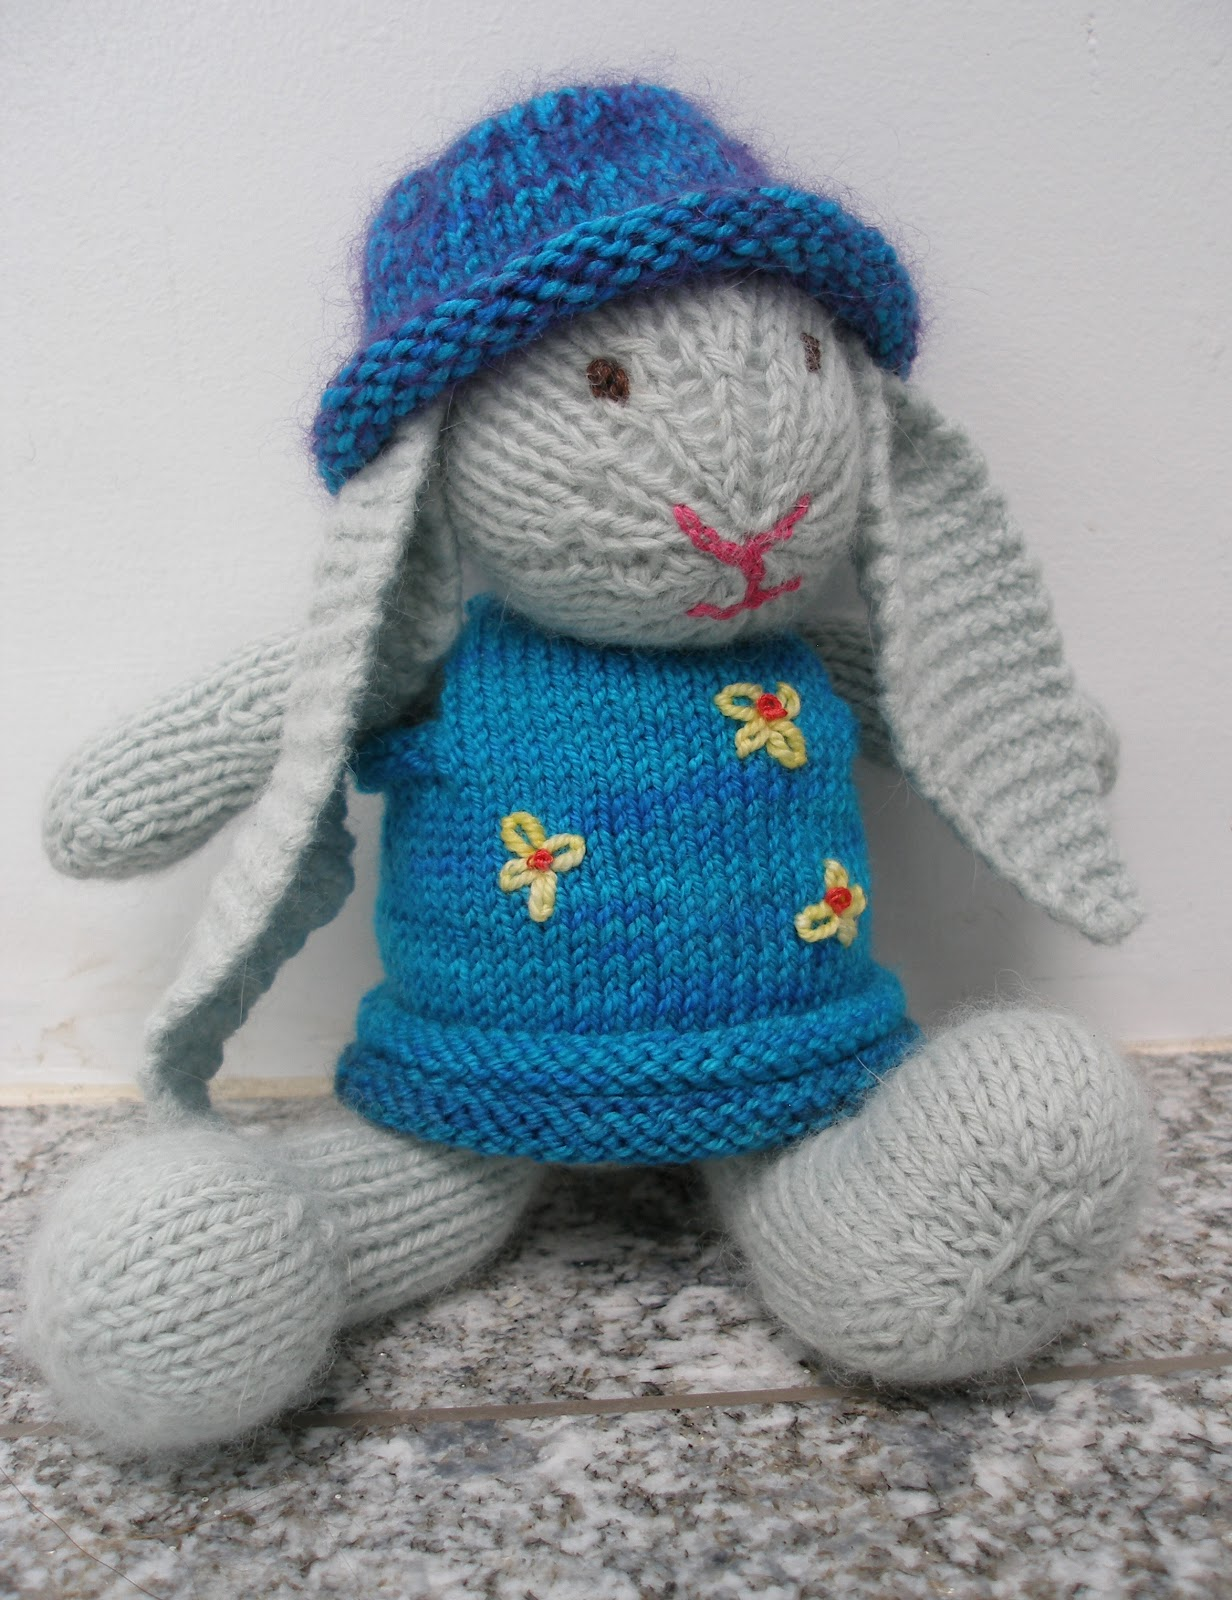 Knitting Blogs : The Knitting Blog by Mr. Puffy the Dog: Bunny Bunny Who Has the Bunny ...